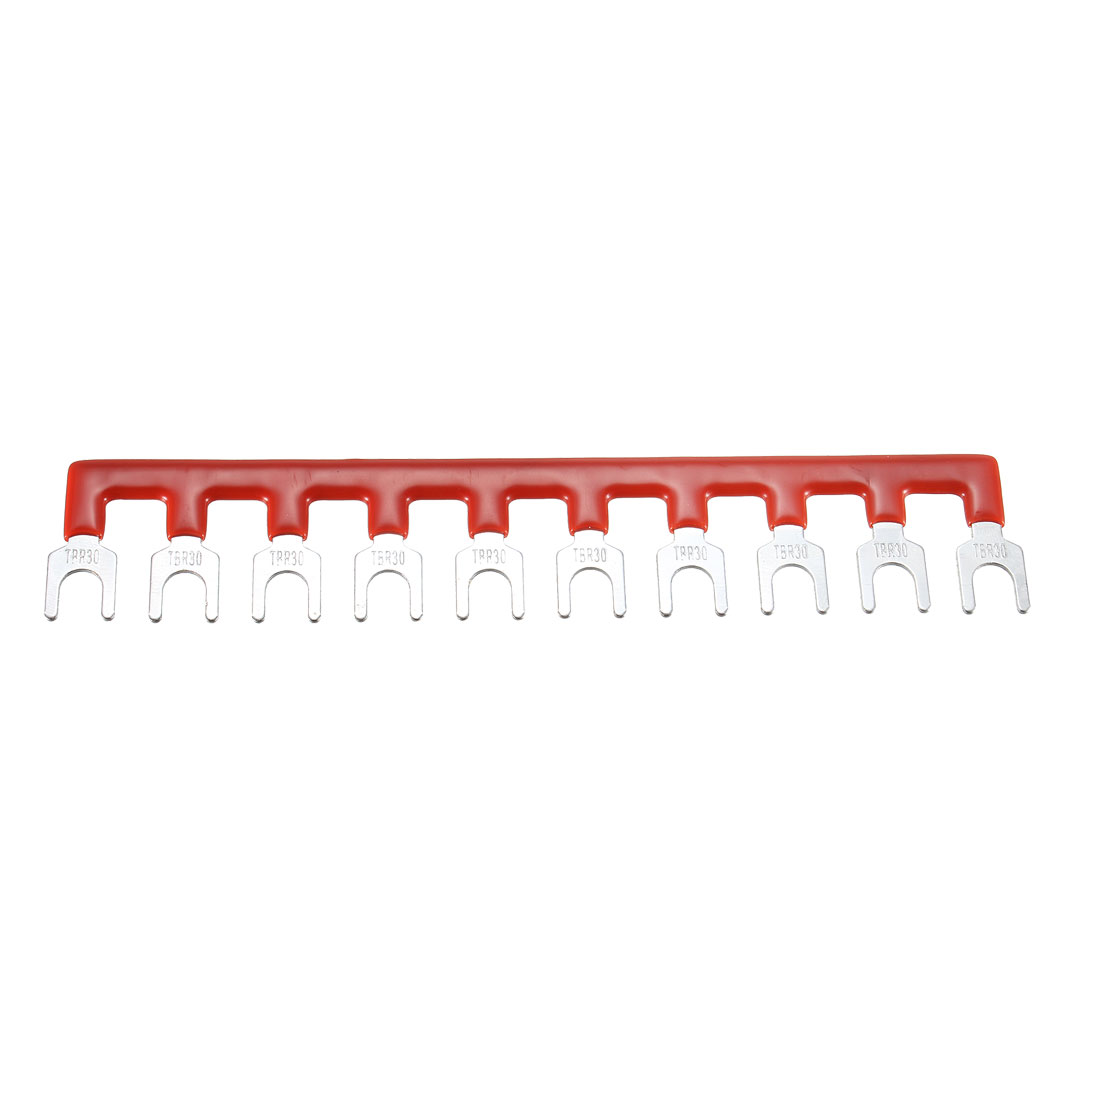 600V 30A 10 Positions Terminal Block Barrier Strip Fork Type Pre-insulated Red